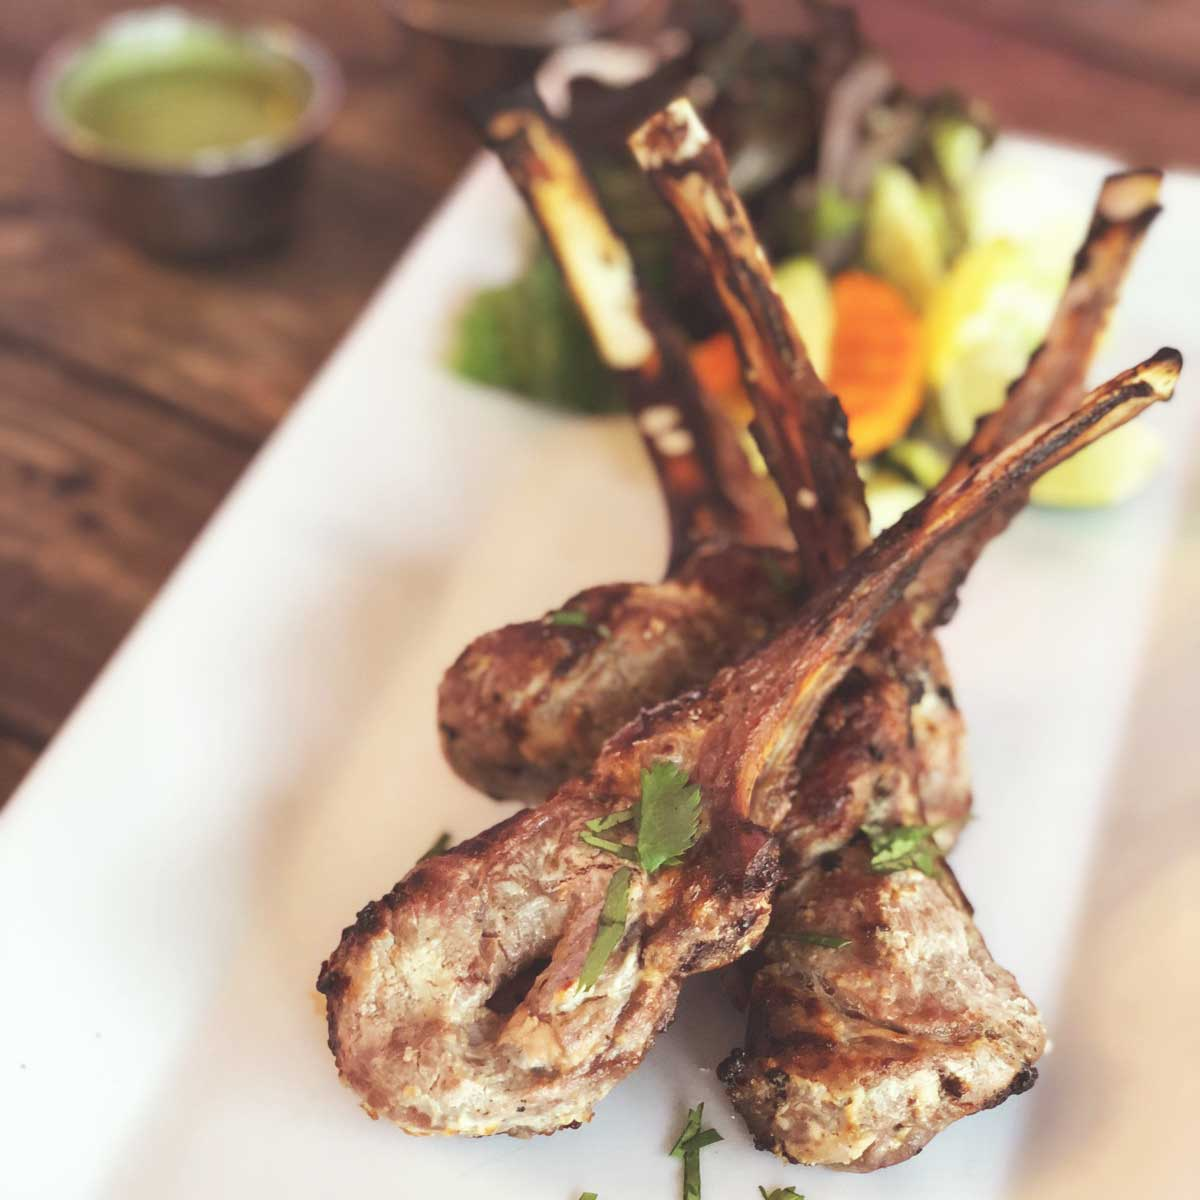 Lamb-Chops-Indian-Restaurant-Festival-Utah.jpg